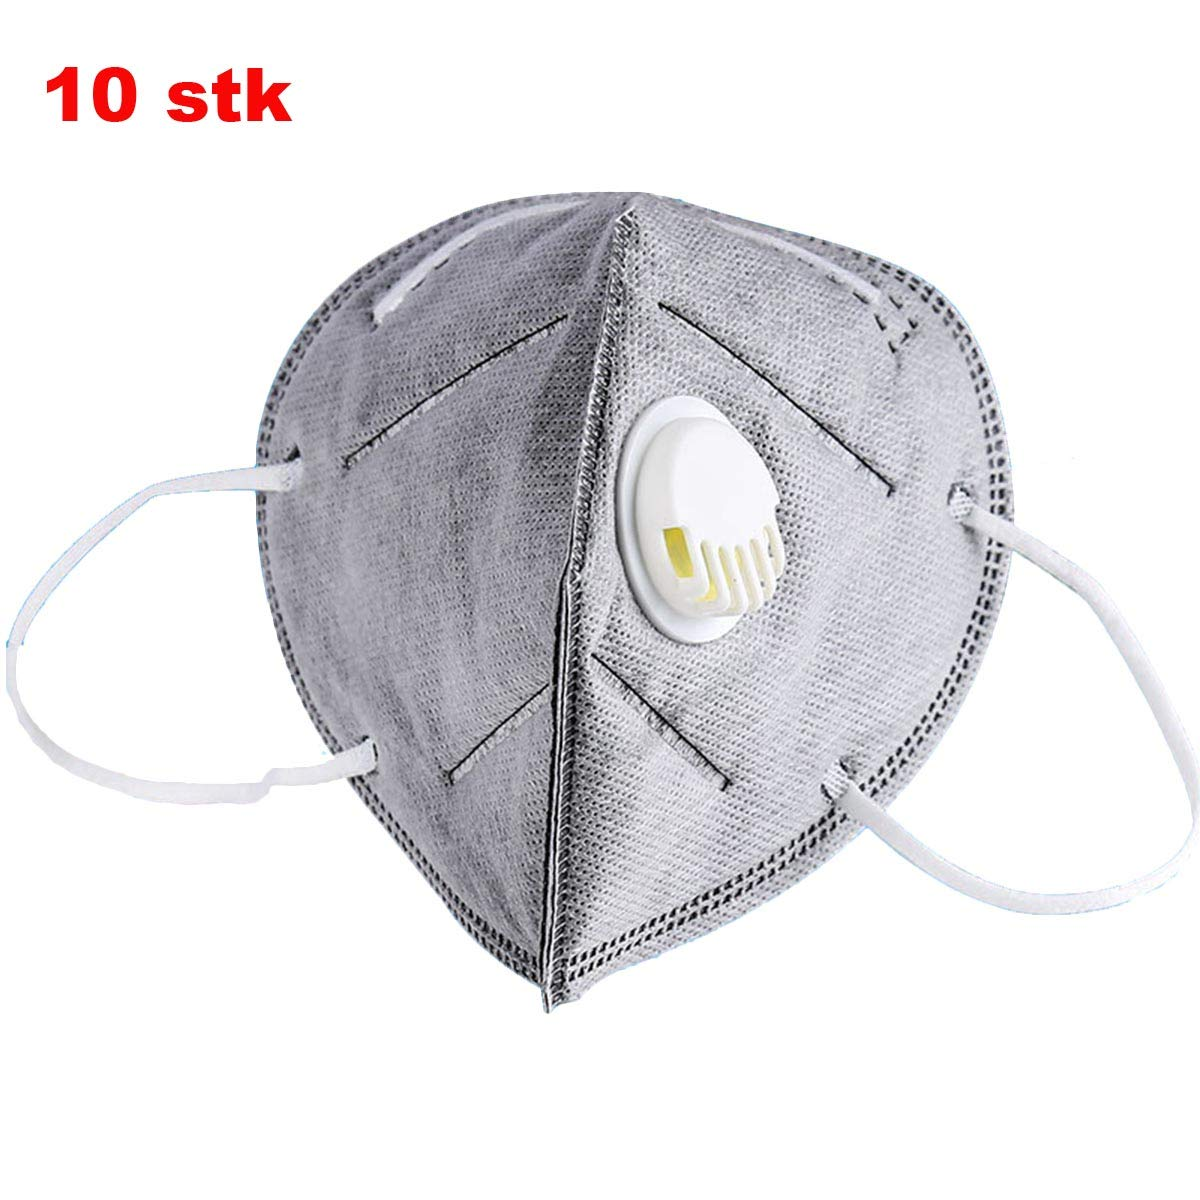 BESTOMZ 10 PCS Activated Carbon Dustproof Masks with Filter Foldable Anti-Fog Masks for Outdoors Activities